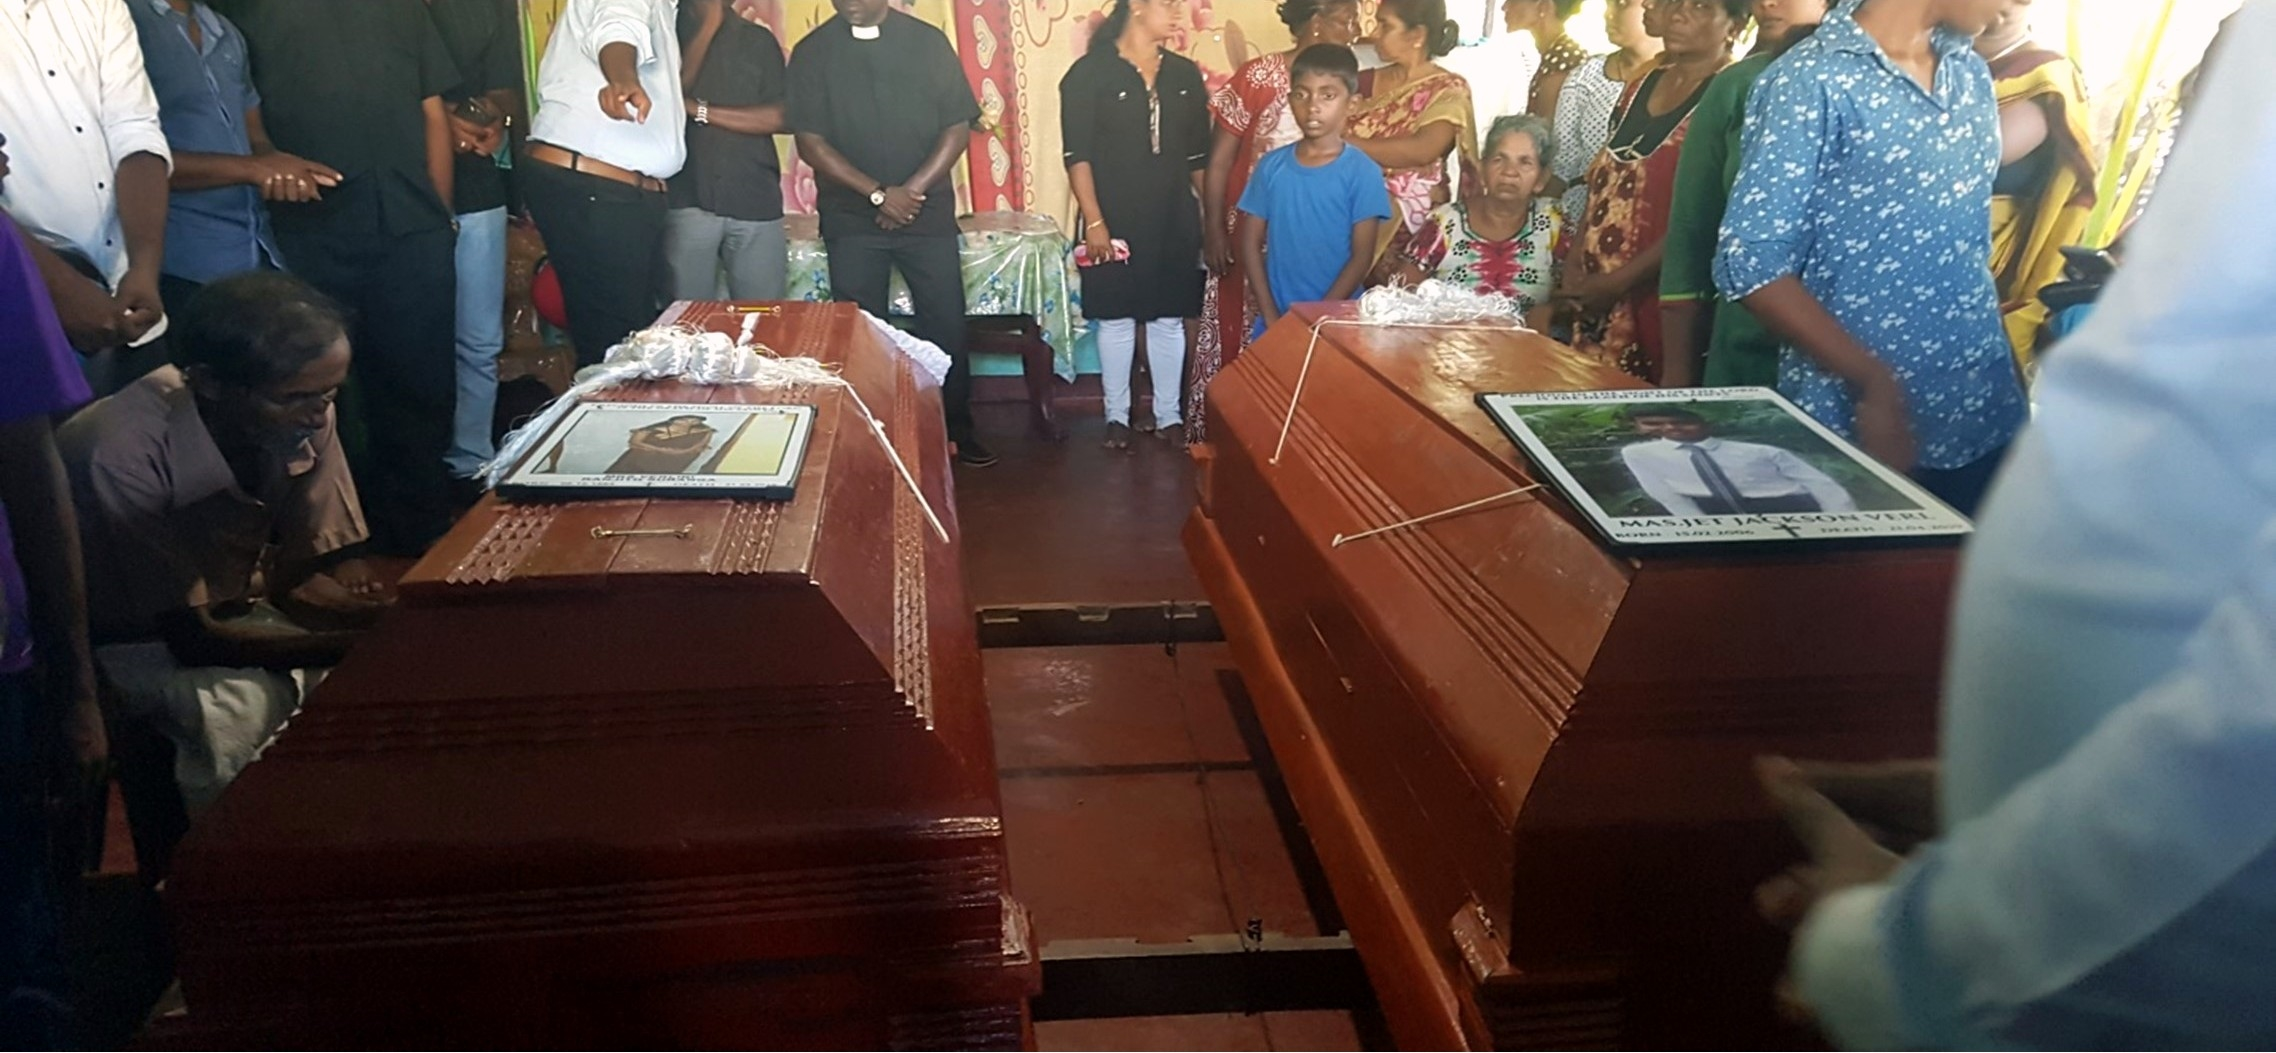 Photo of the funeral for a Sunday school teacher and 13-year-old boy killed in the Sri Lanka church suicide bombings